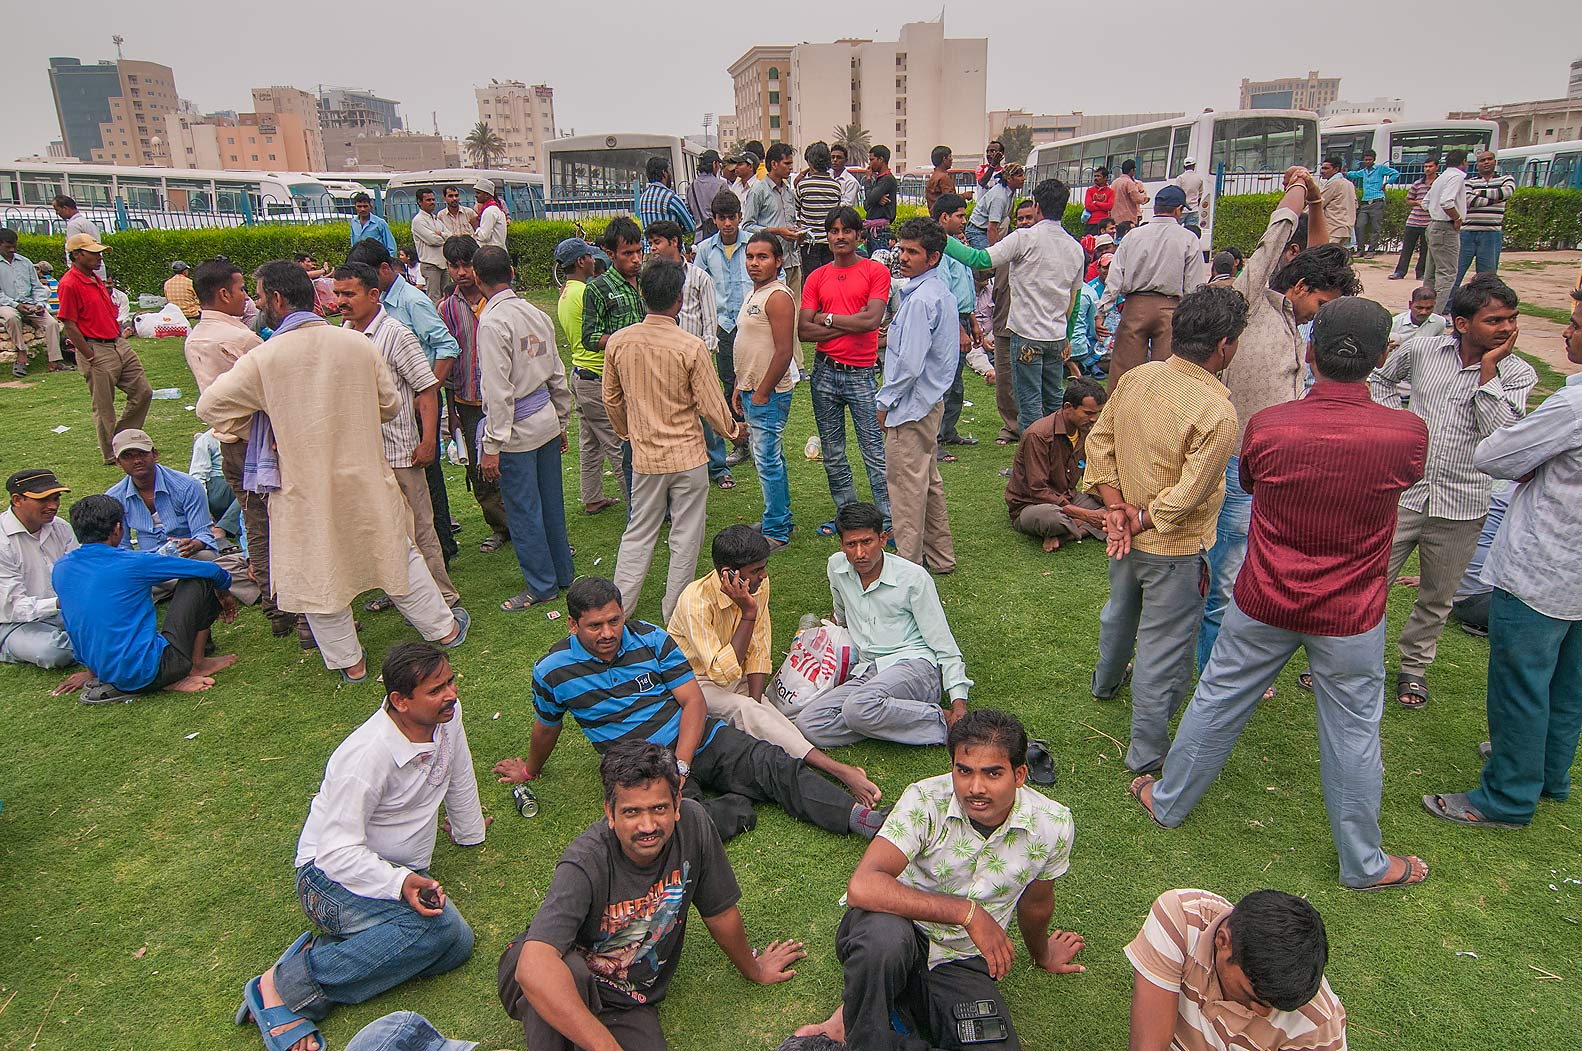 Migrant workers socializing on a lawn near Central Bus Station Al Ghanim. Doha, Qatar